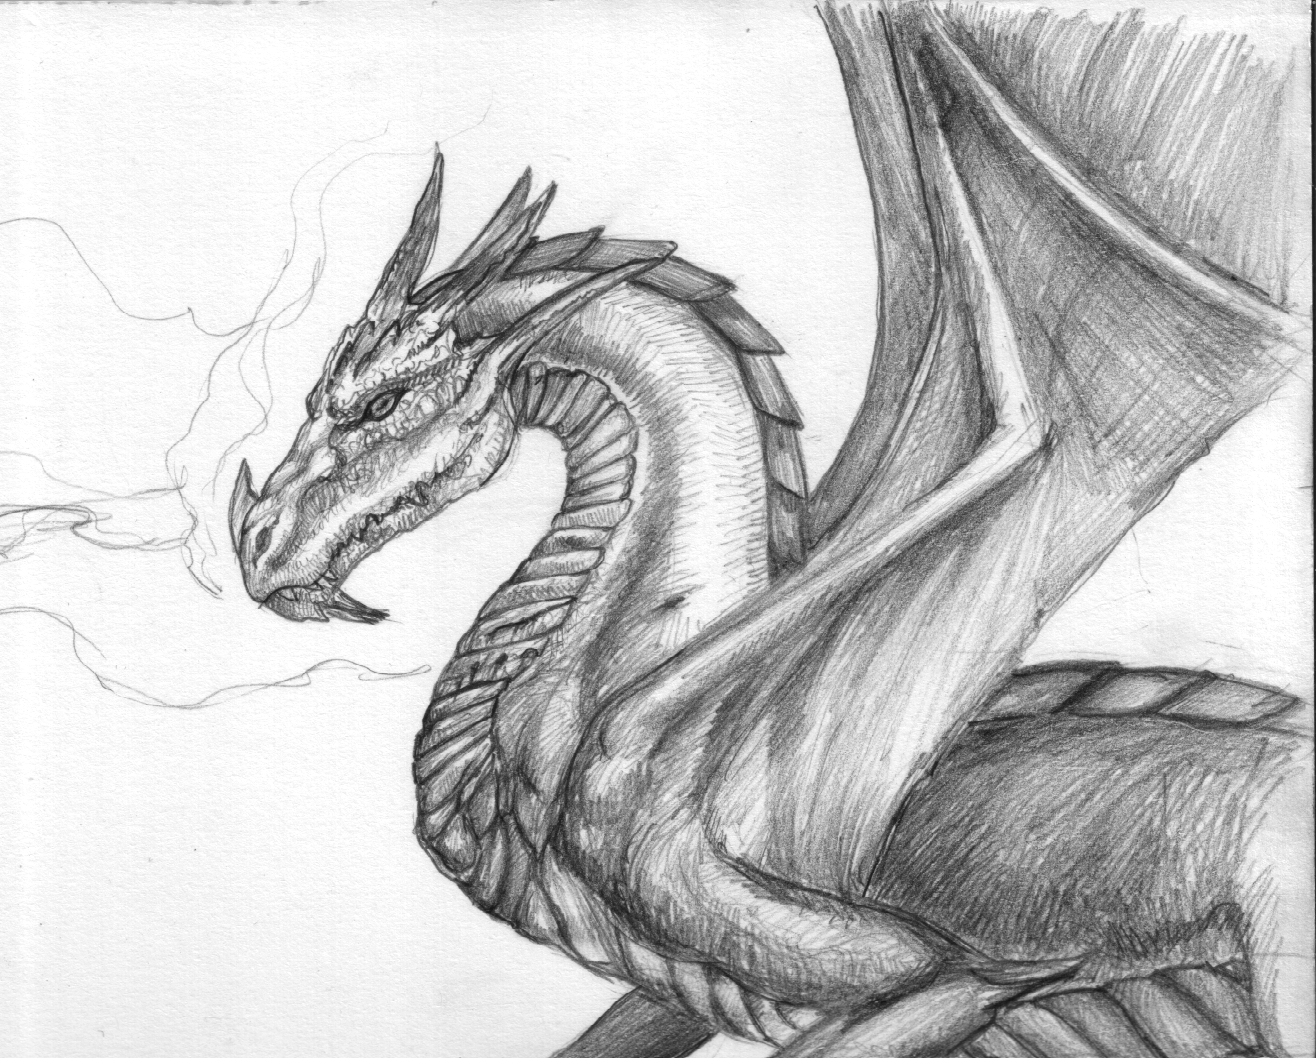 Dragon2 dessins et croquis - Dessiner dragon ...